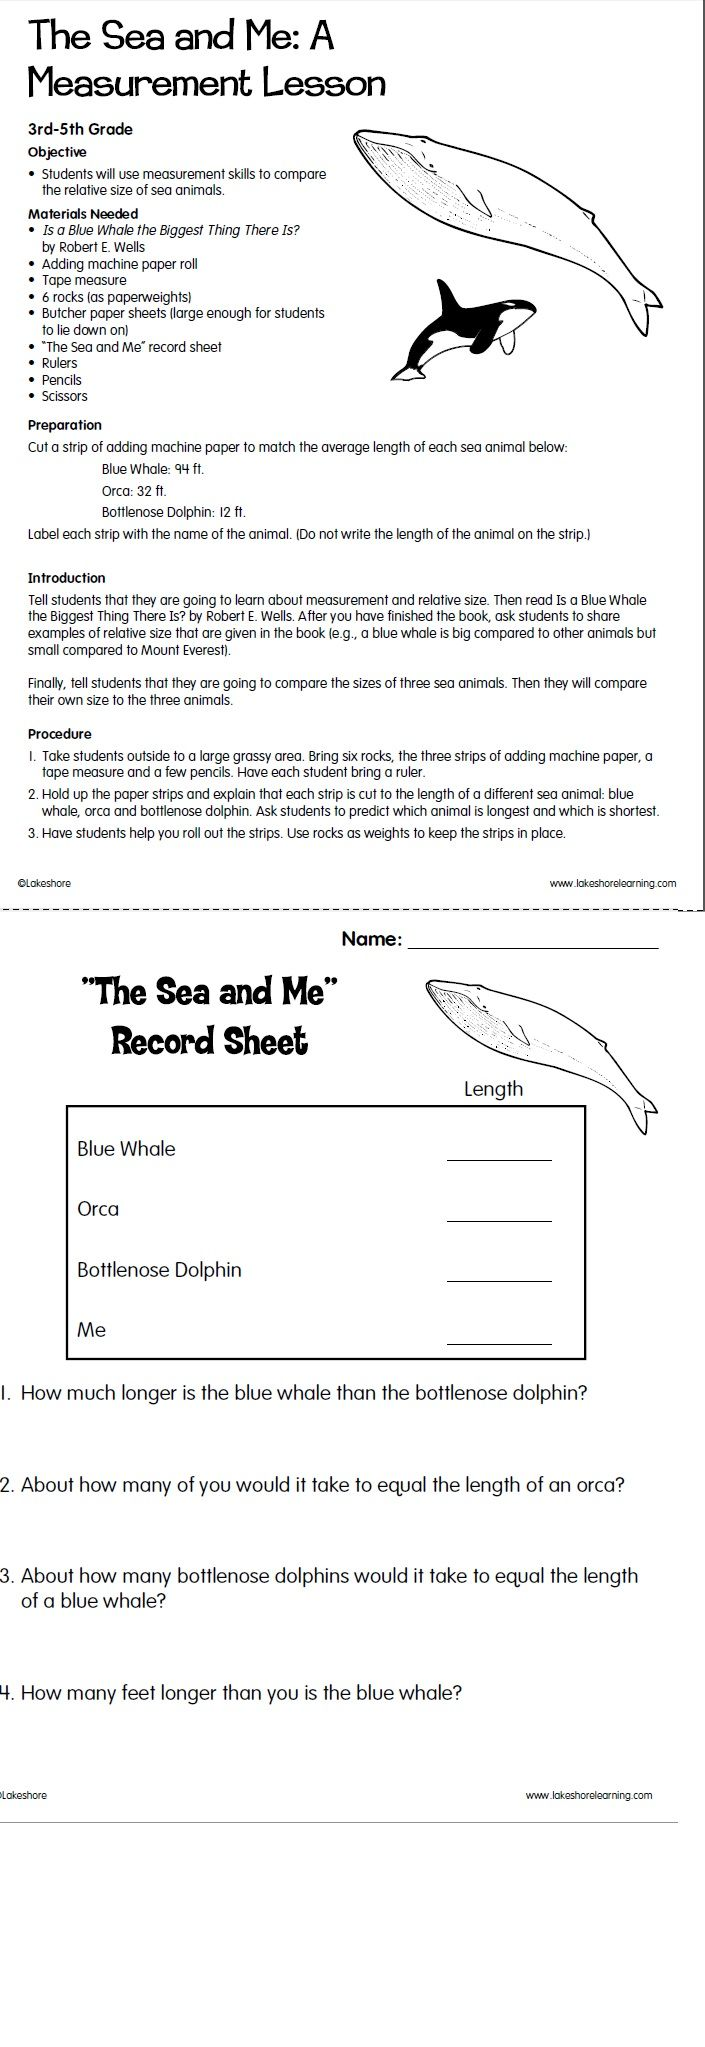 worksheet Stone Fox Worksheets 81 best teaching images on pinterest opinion writing the sea and me a measurement lesson from lakeshore learning